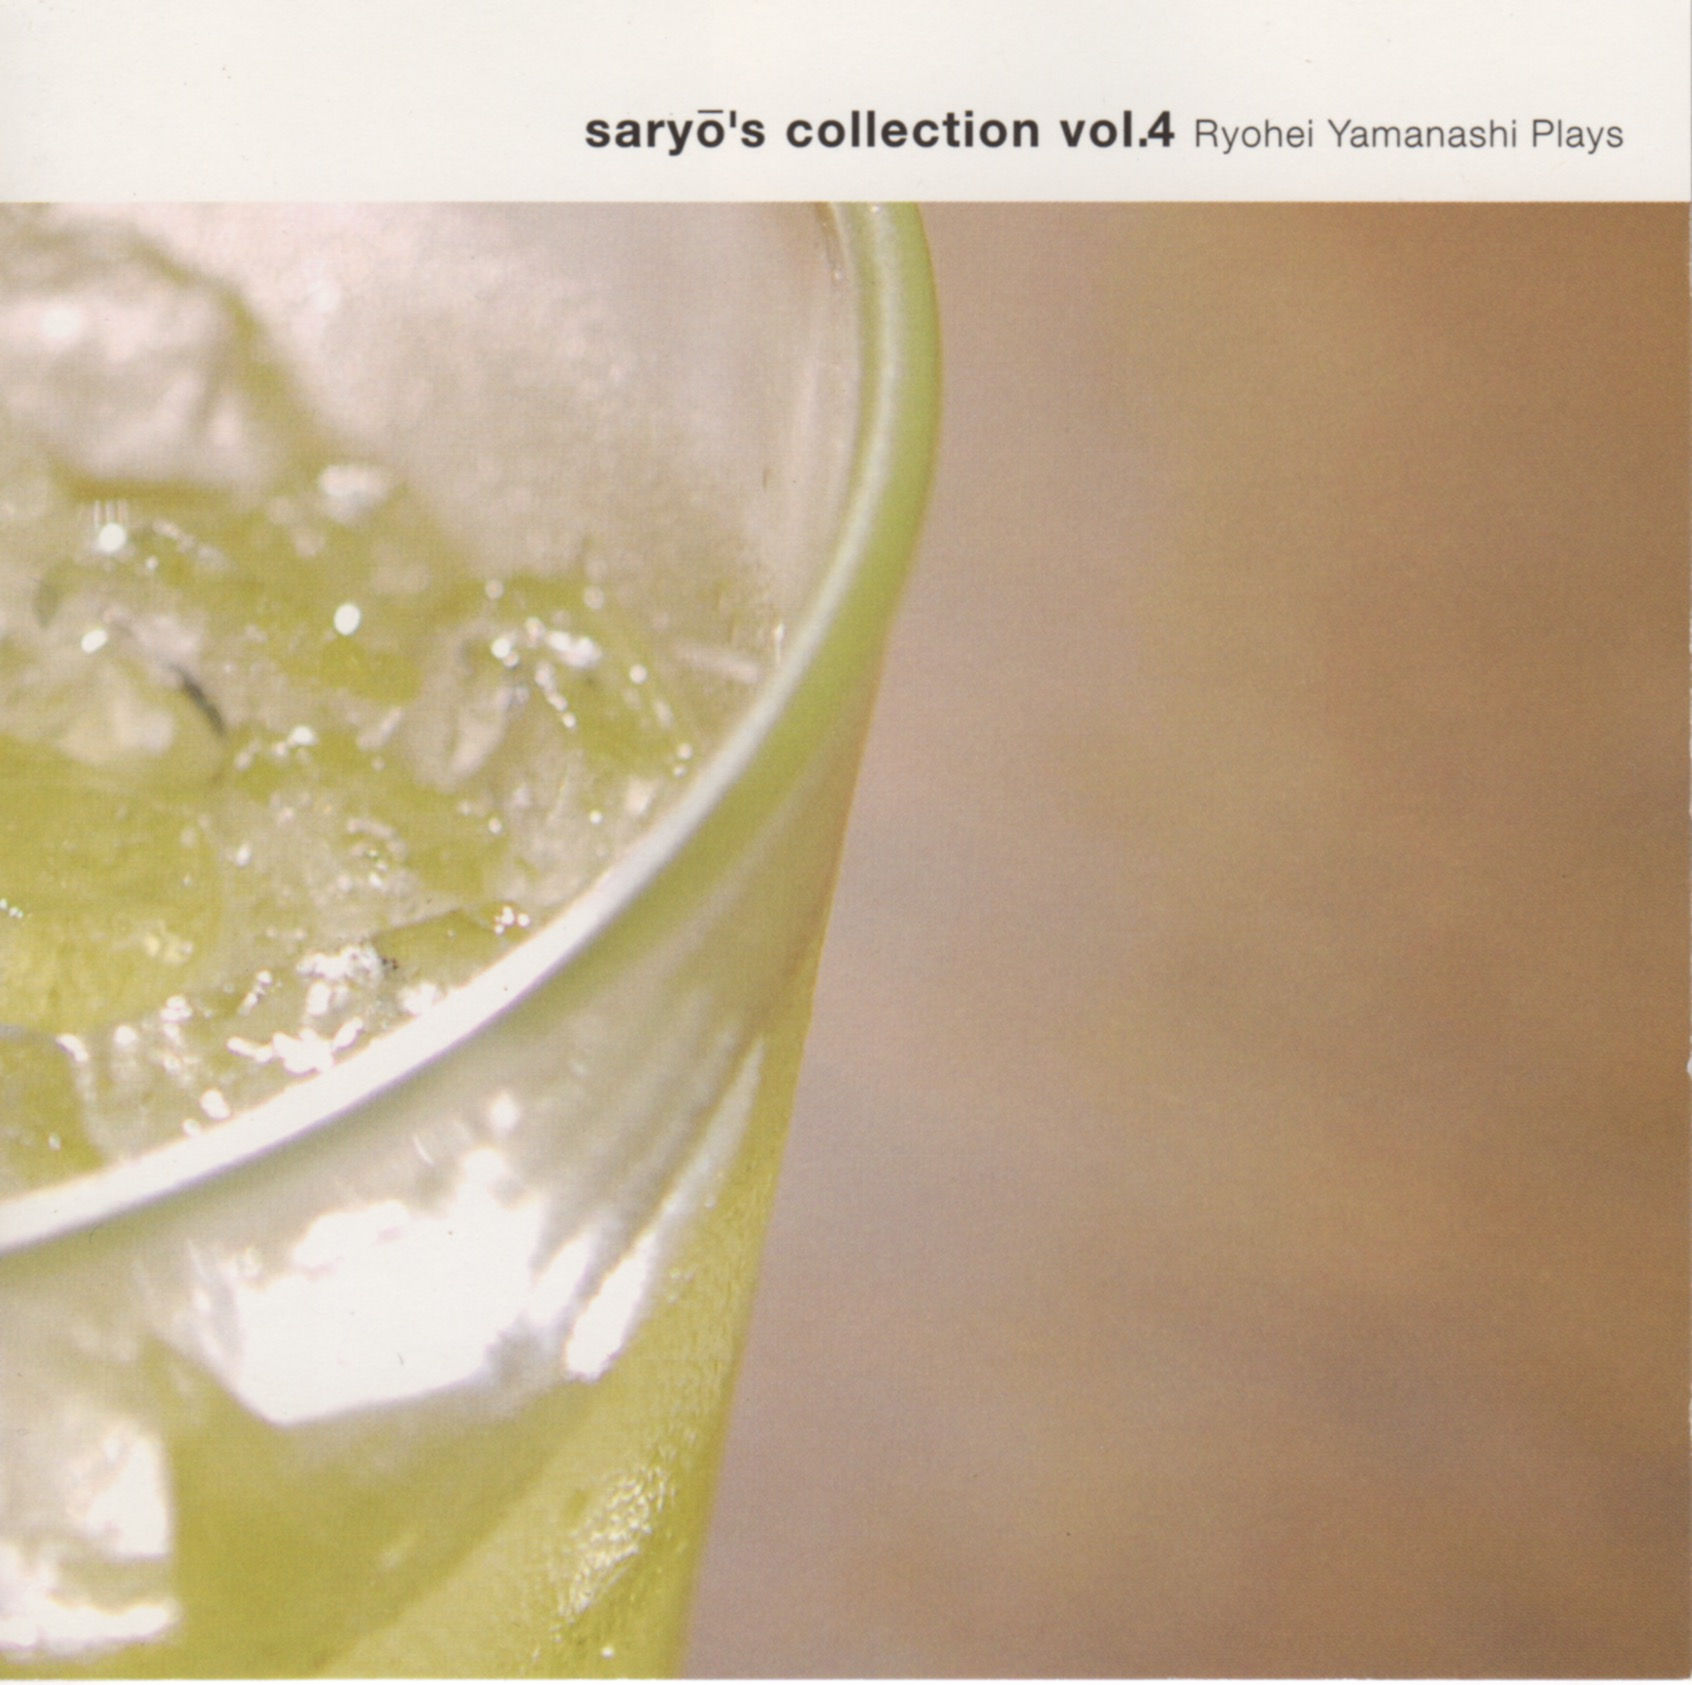 saryo's collection vol.4